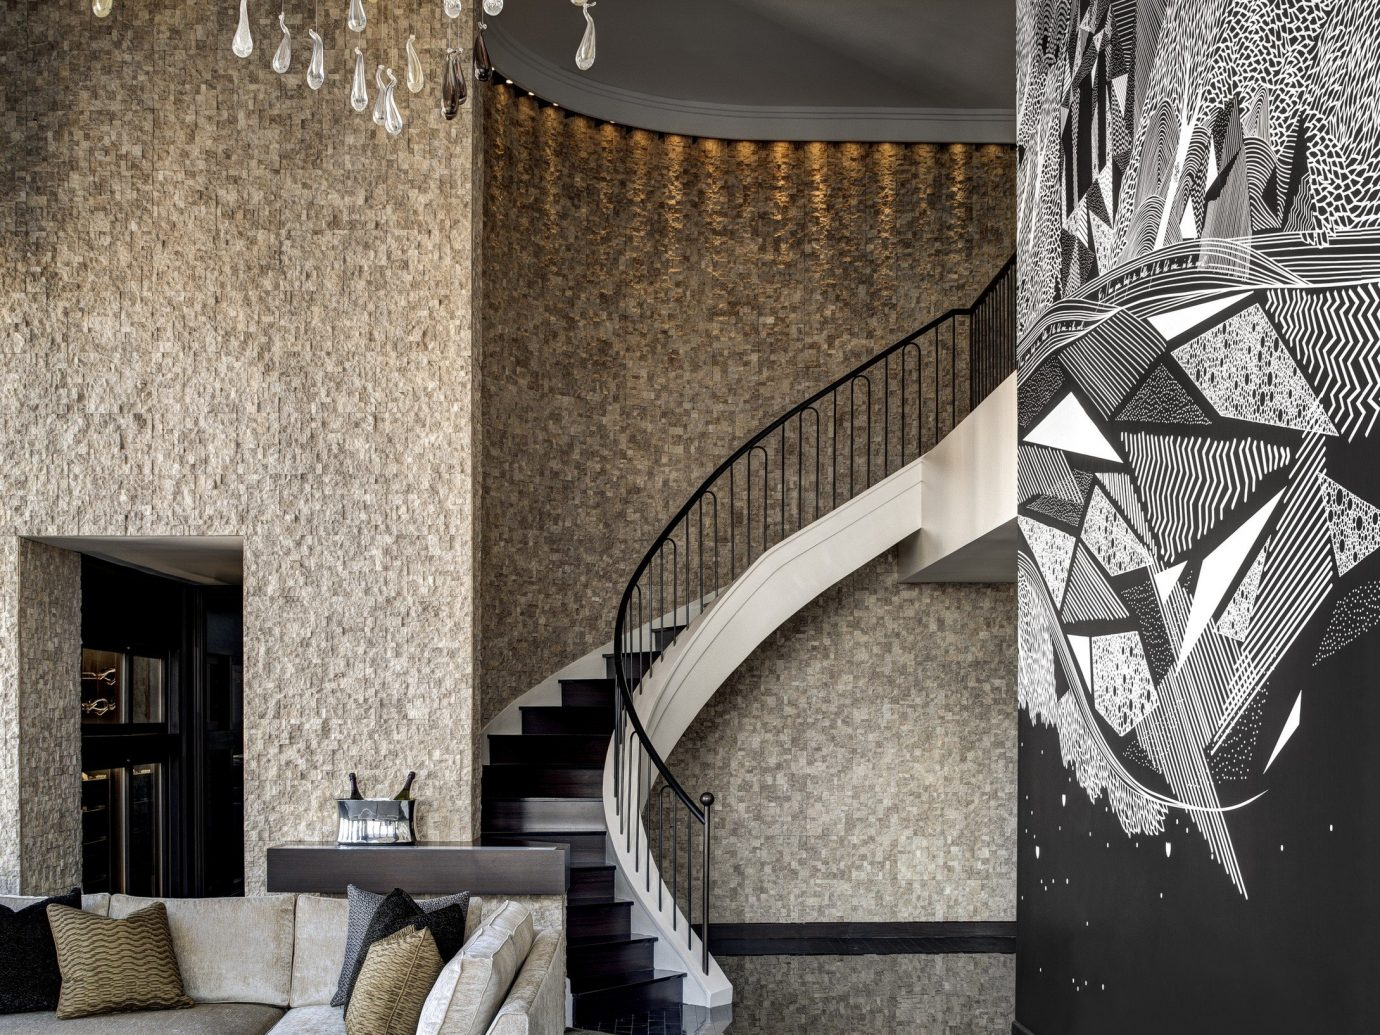 Hotels Luxury Travel Travel Tips indoor wall interior design Architecture ceiling living room Lobby floor angle interior designer flooring wallpaper furniture stone